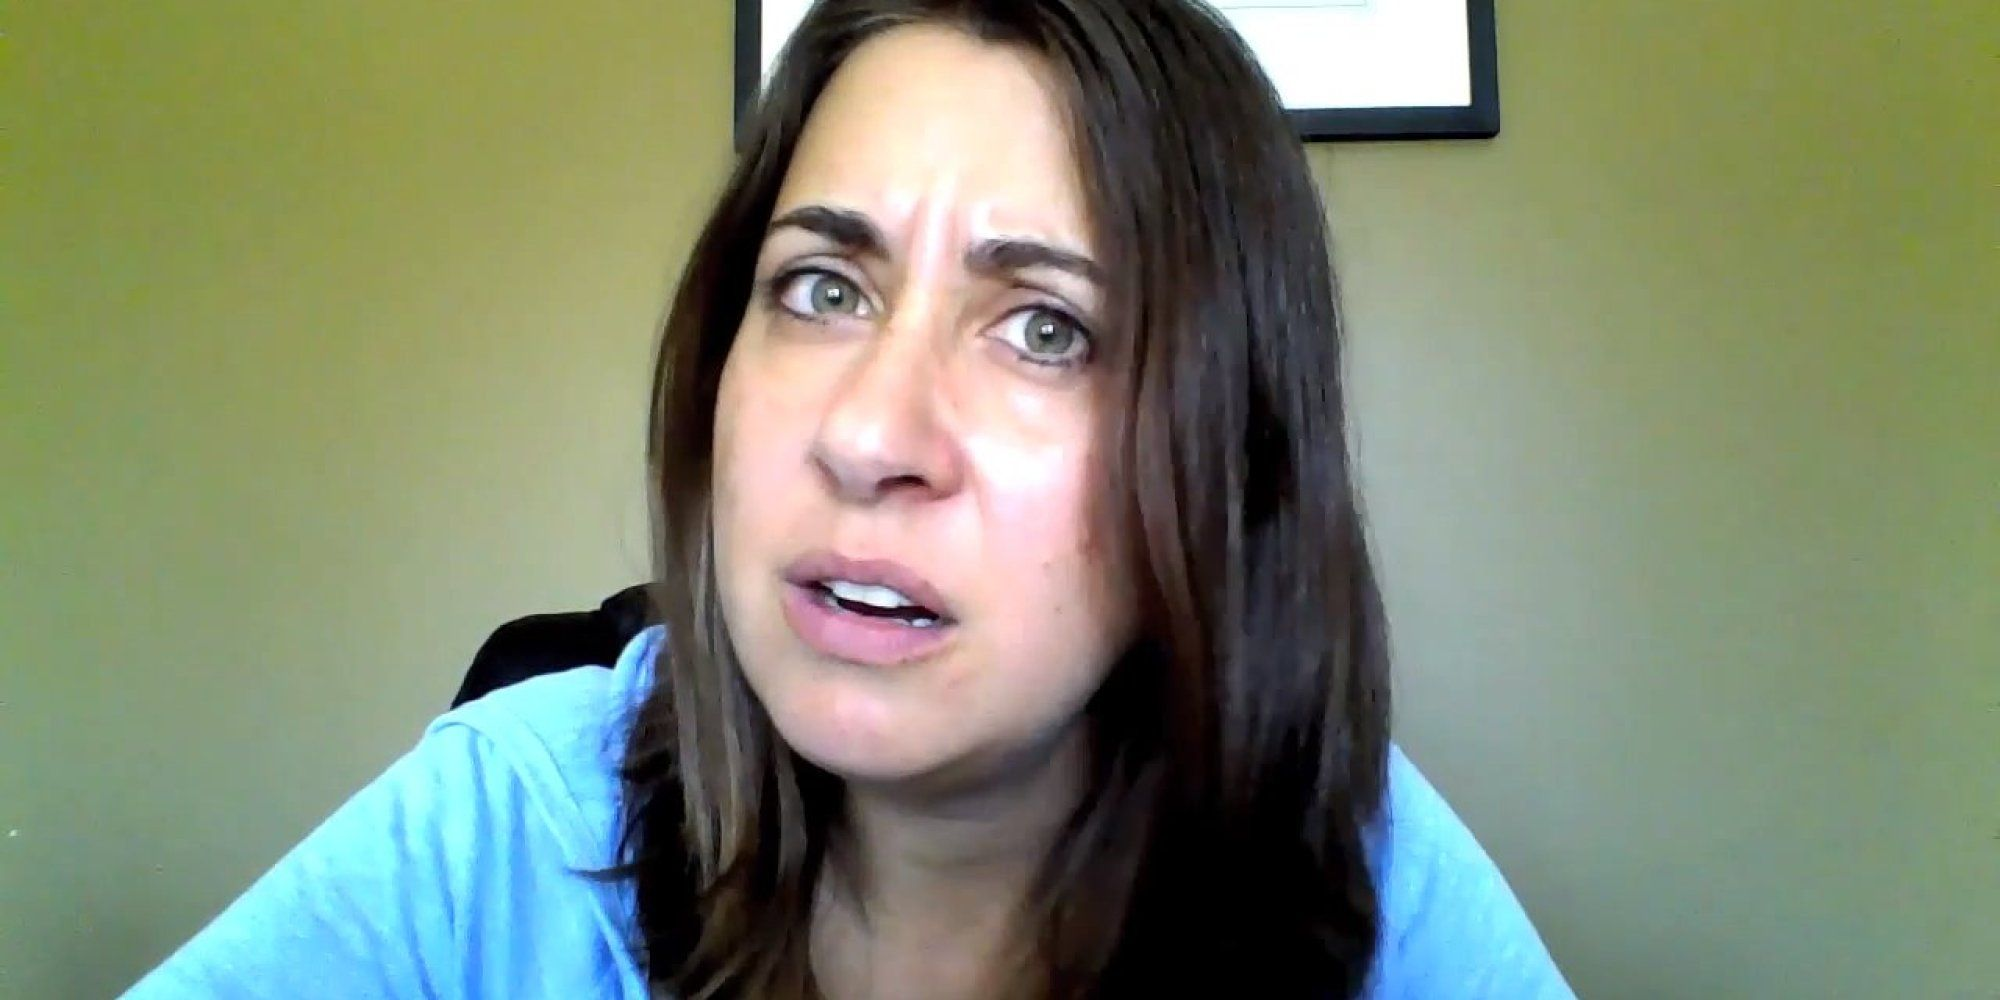 """Do you want to know what I think?"" So begins one of the nastier messages read aloud in this funny mashup of mom bloggers -- including several HuffPost Parents regulars -- reading out some of their ""favorite"" comments. @Suburban Snapshots"